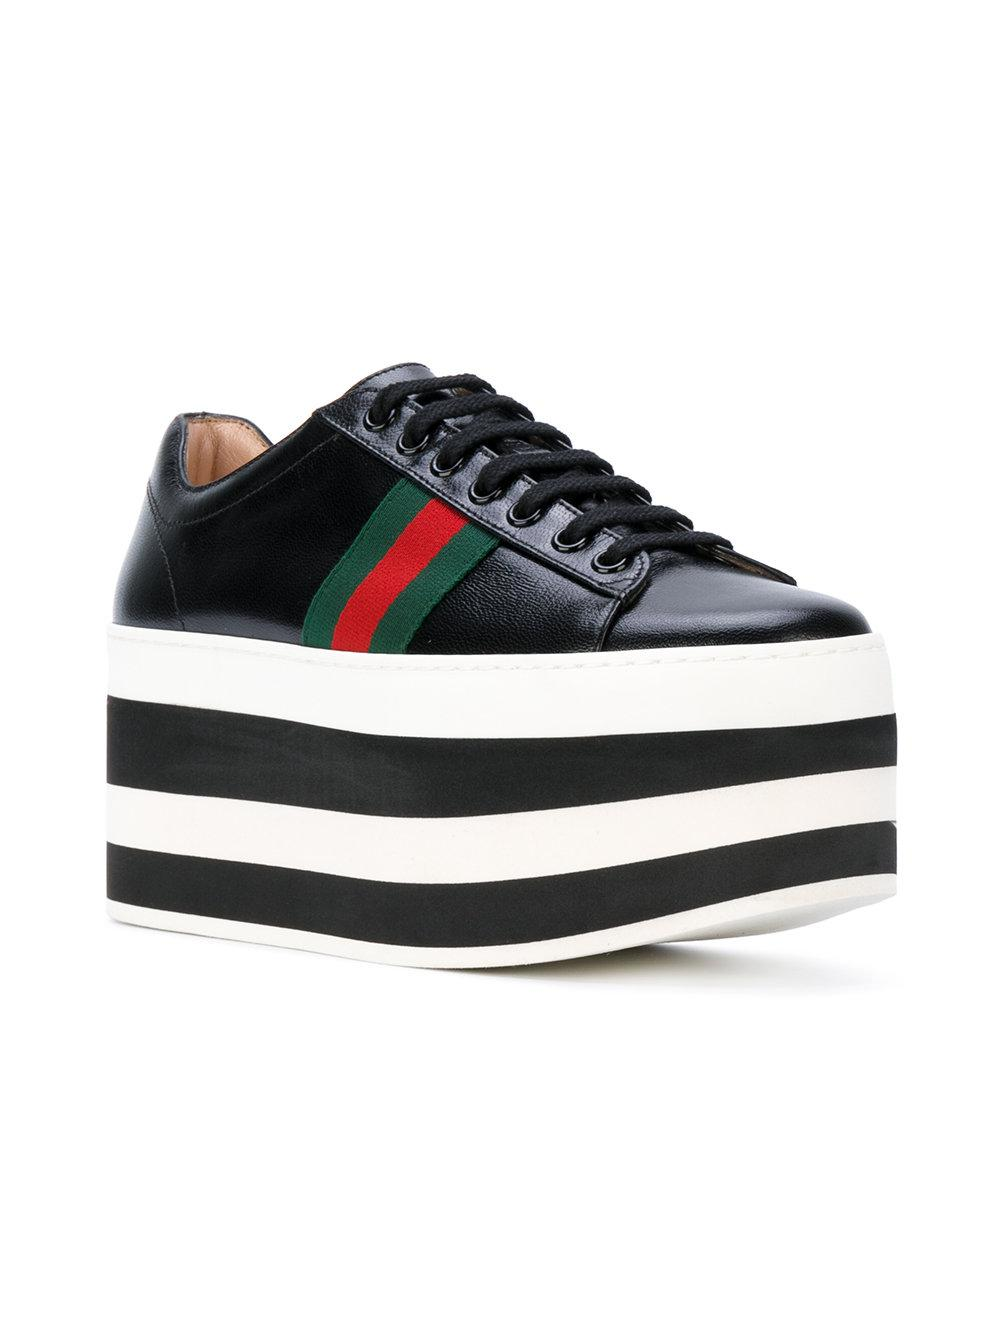 Gucci Leather Platform Sneakers in